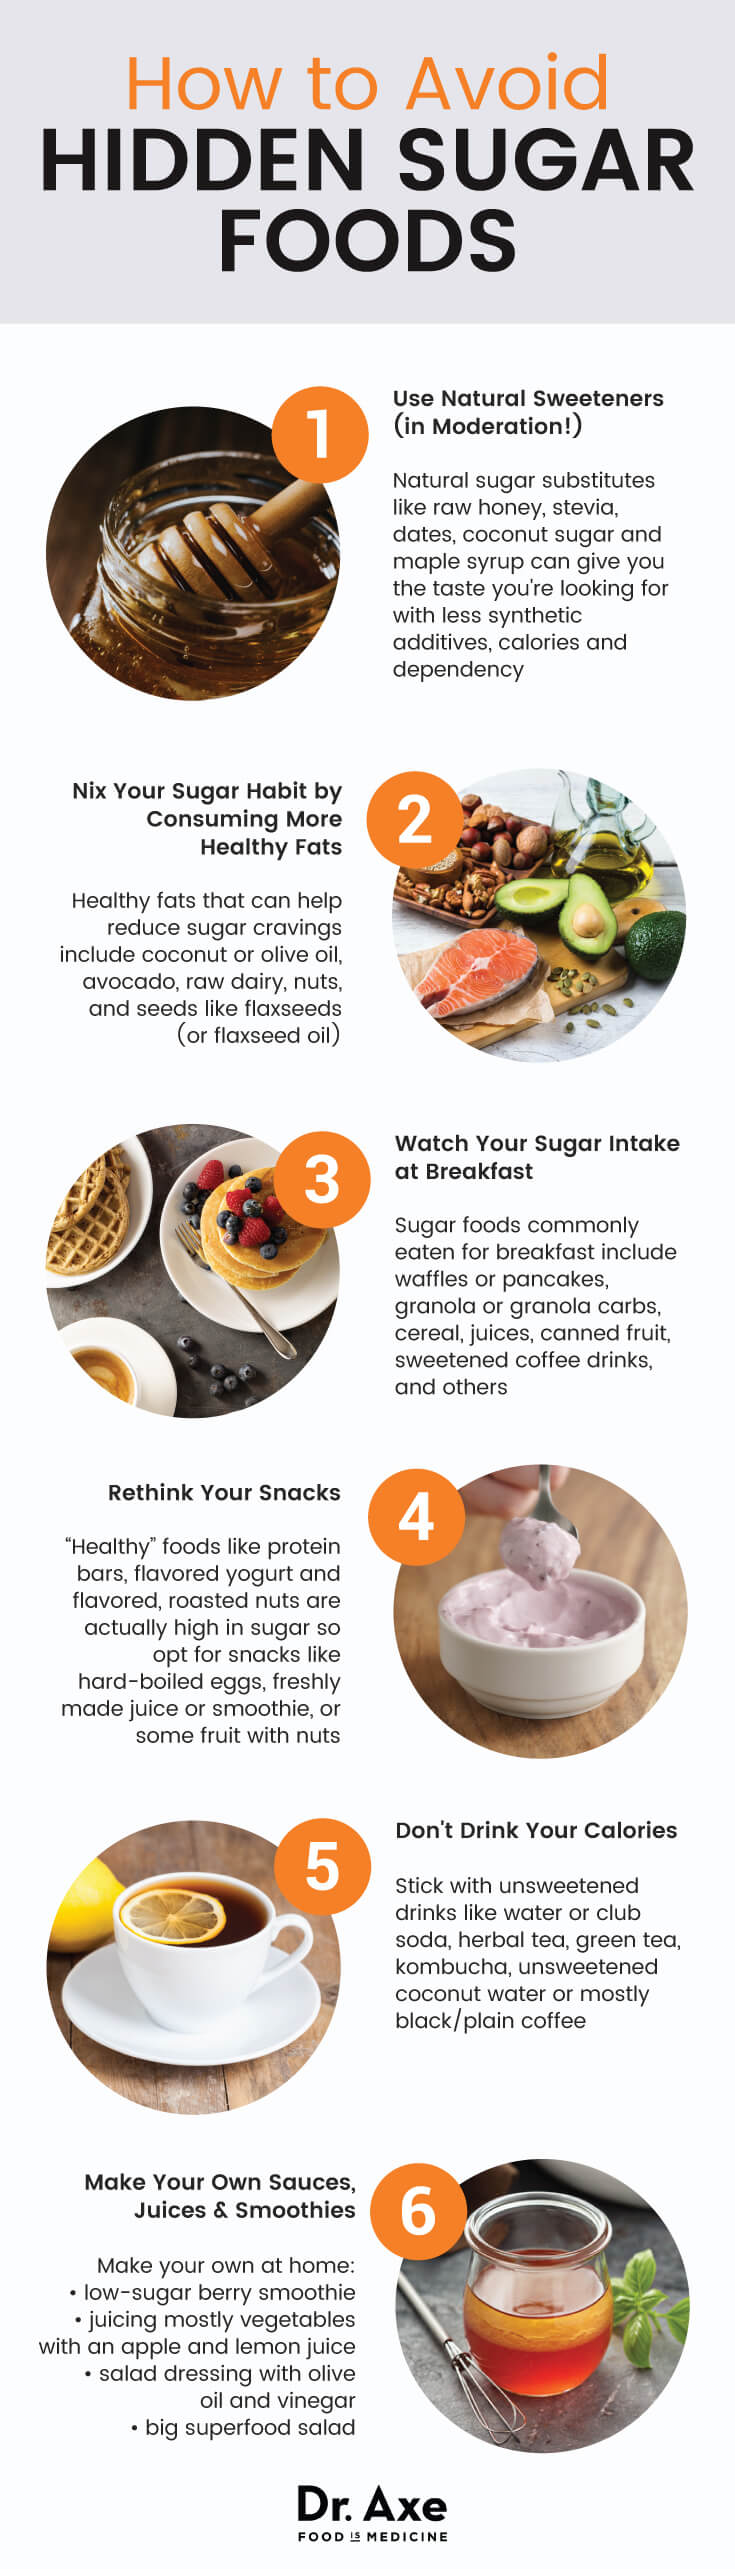 One More Time About Sugar: Learn To Avoid The Hidden Dangers Infographic